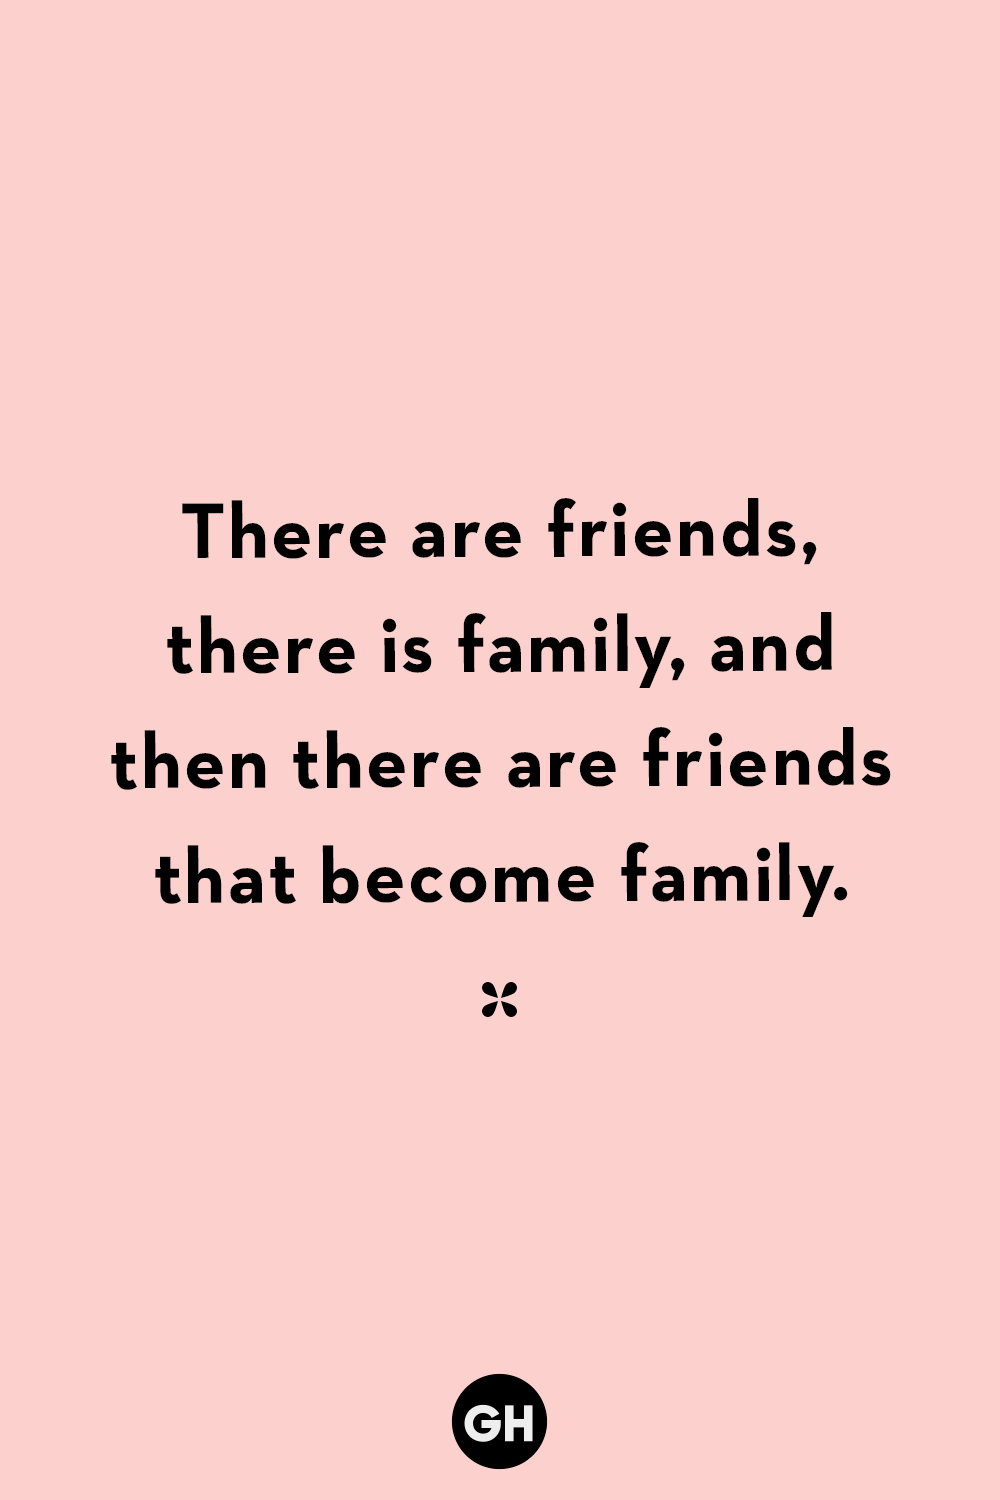 4 Short Friendship Quotes for Best Friends - Cute Sayings About